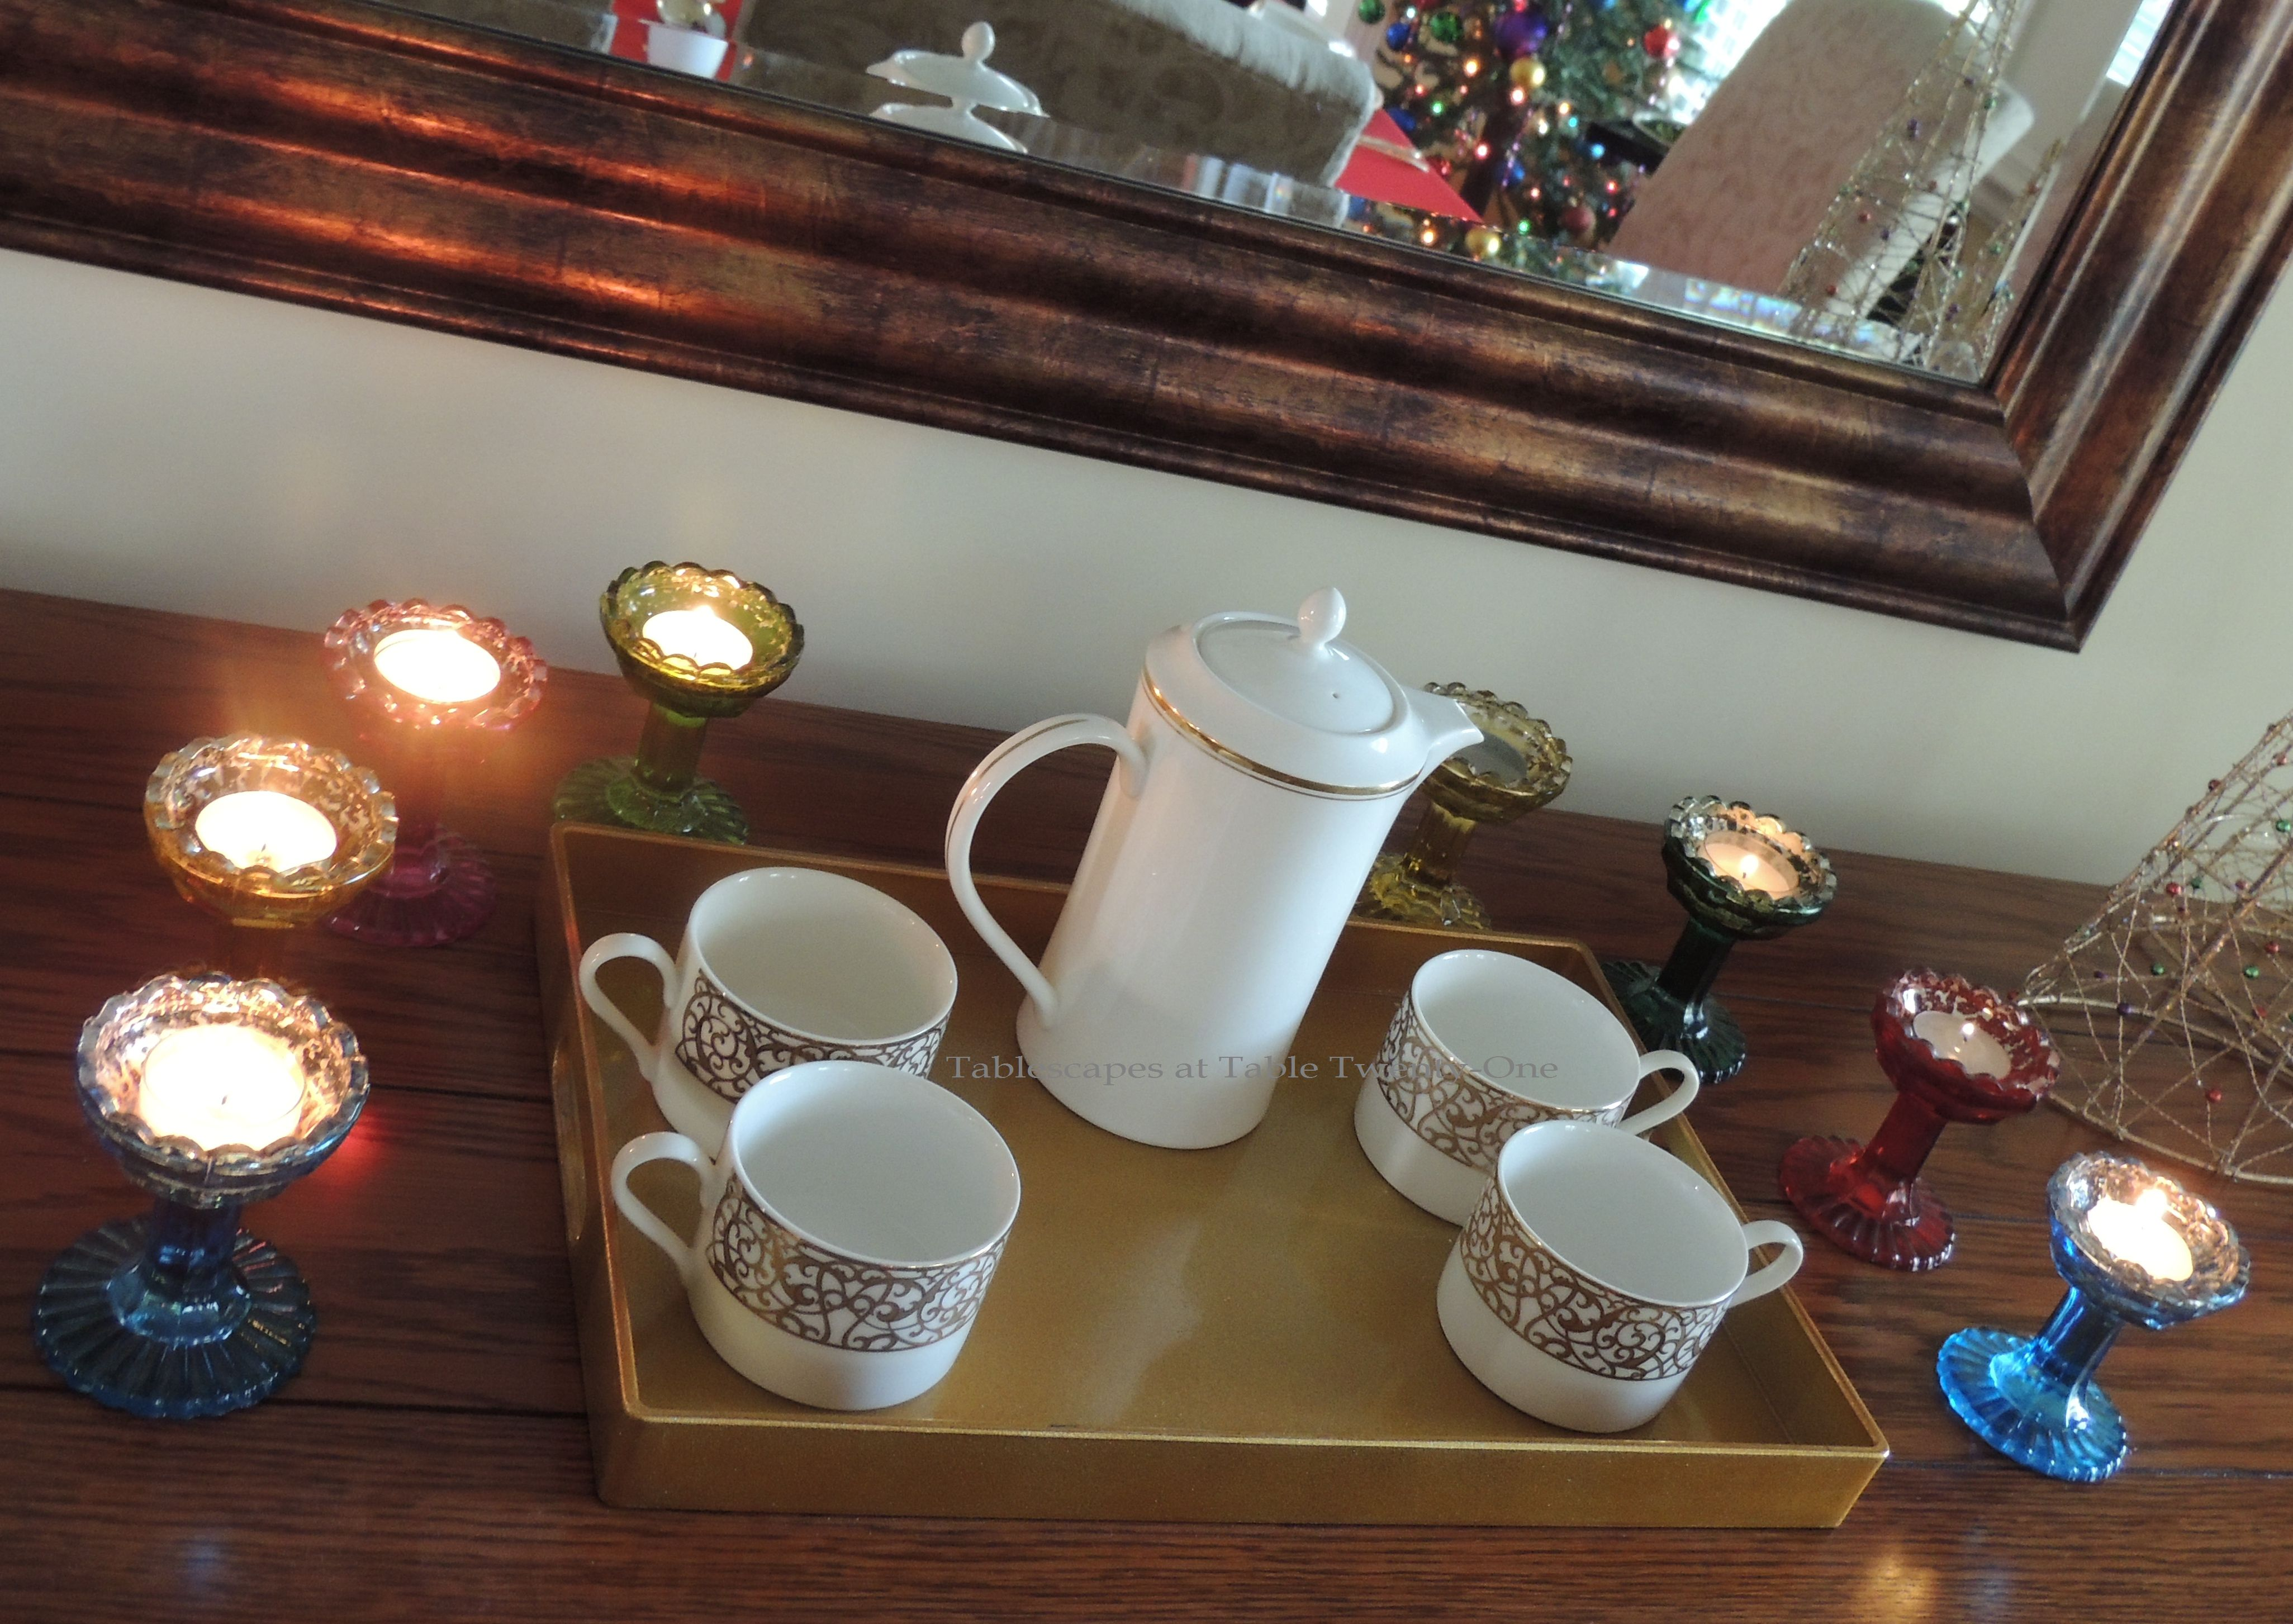 Tablescapes at Table Twenty-One, Merry & Bright Multi-Color Christmas: Coffee service tray